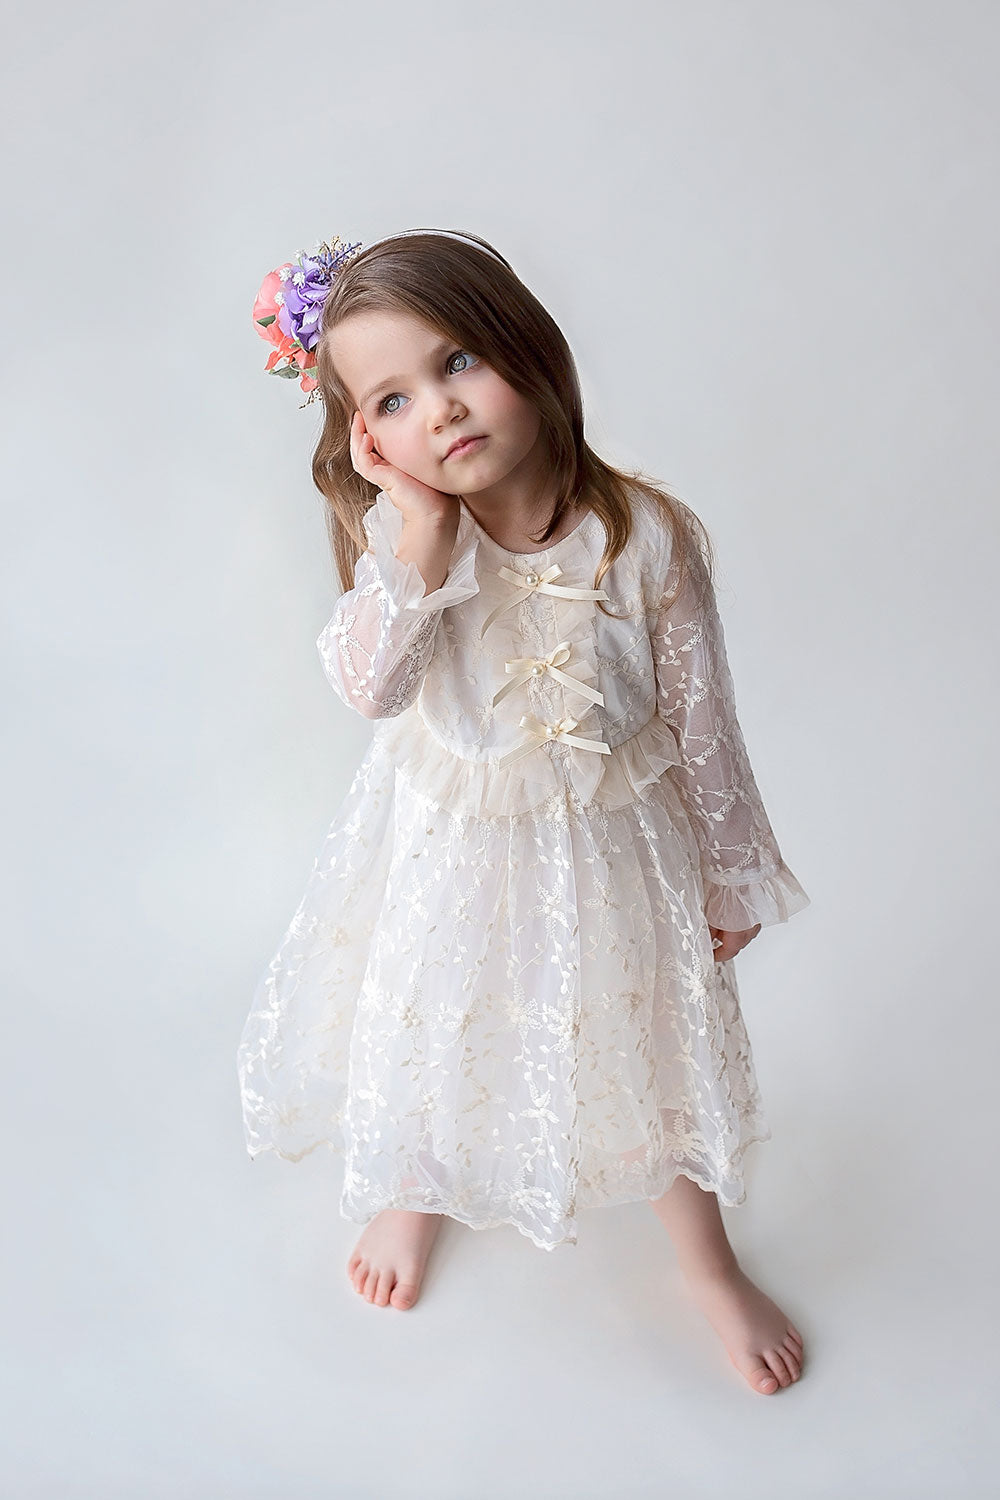 Pretty girl wearing Bianca Lace Girls Dress with Bows in Antique White-by Miele Moda Boutique